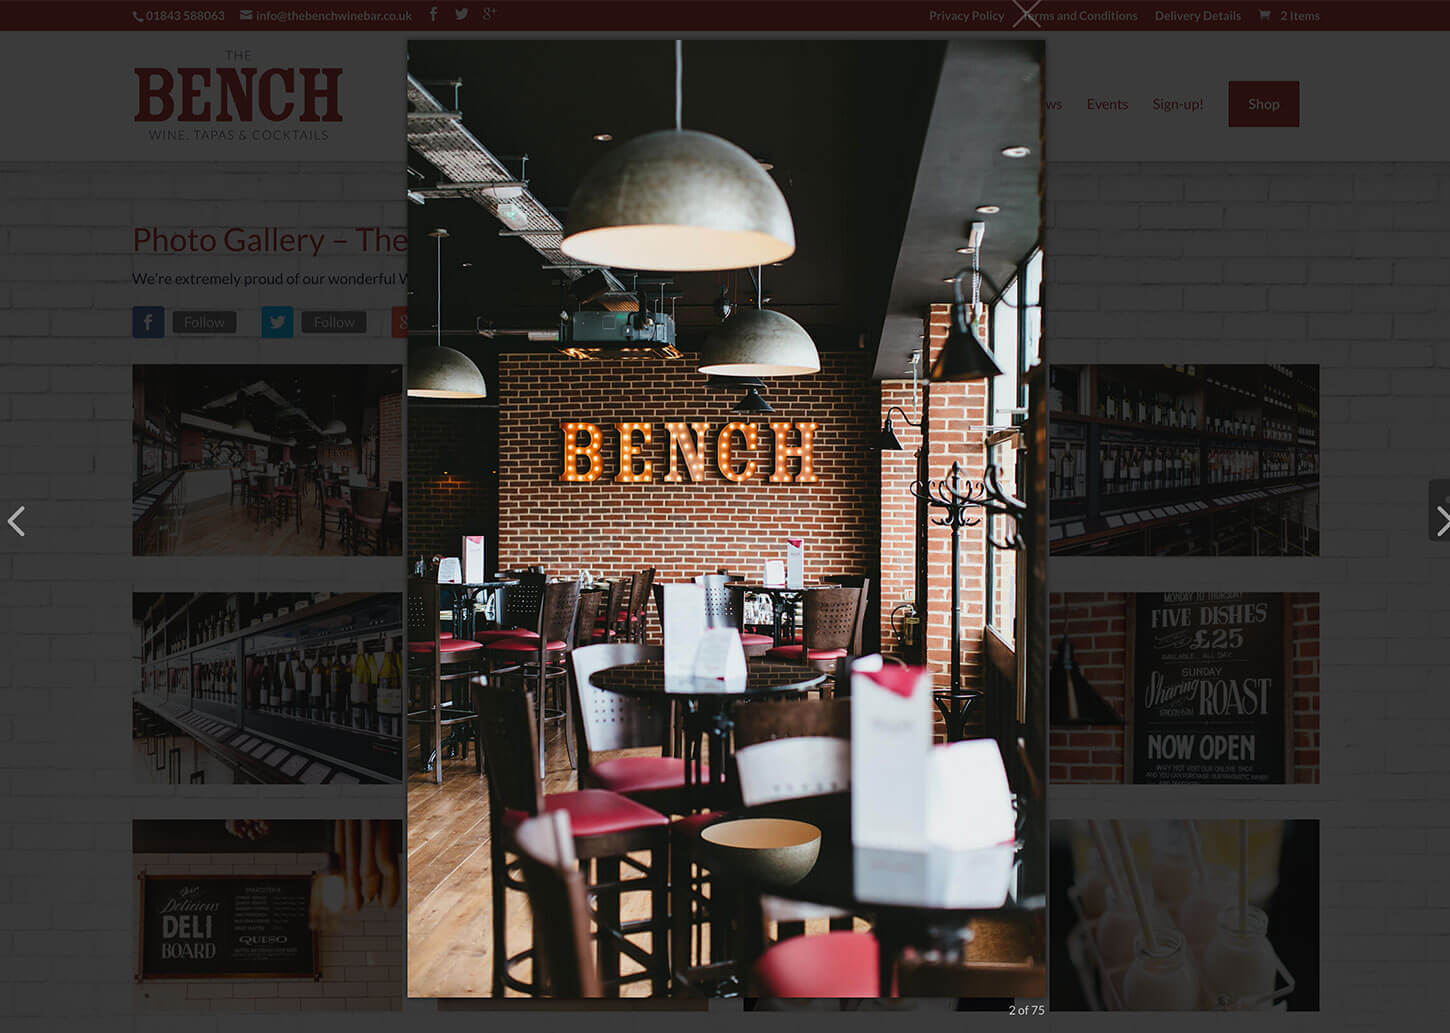 The Bench Restaurant website design - Image Gallery